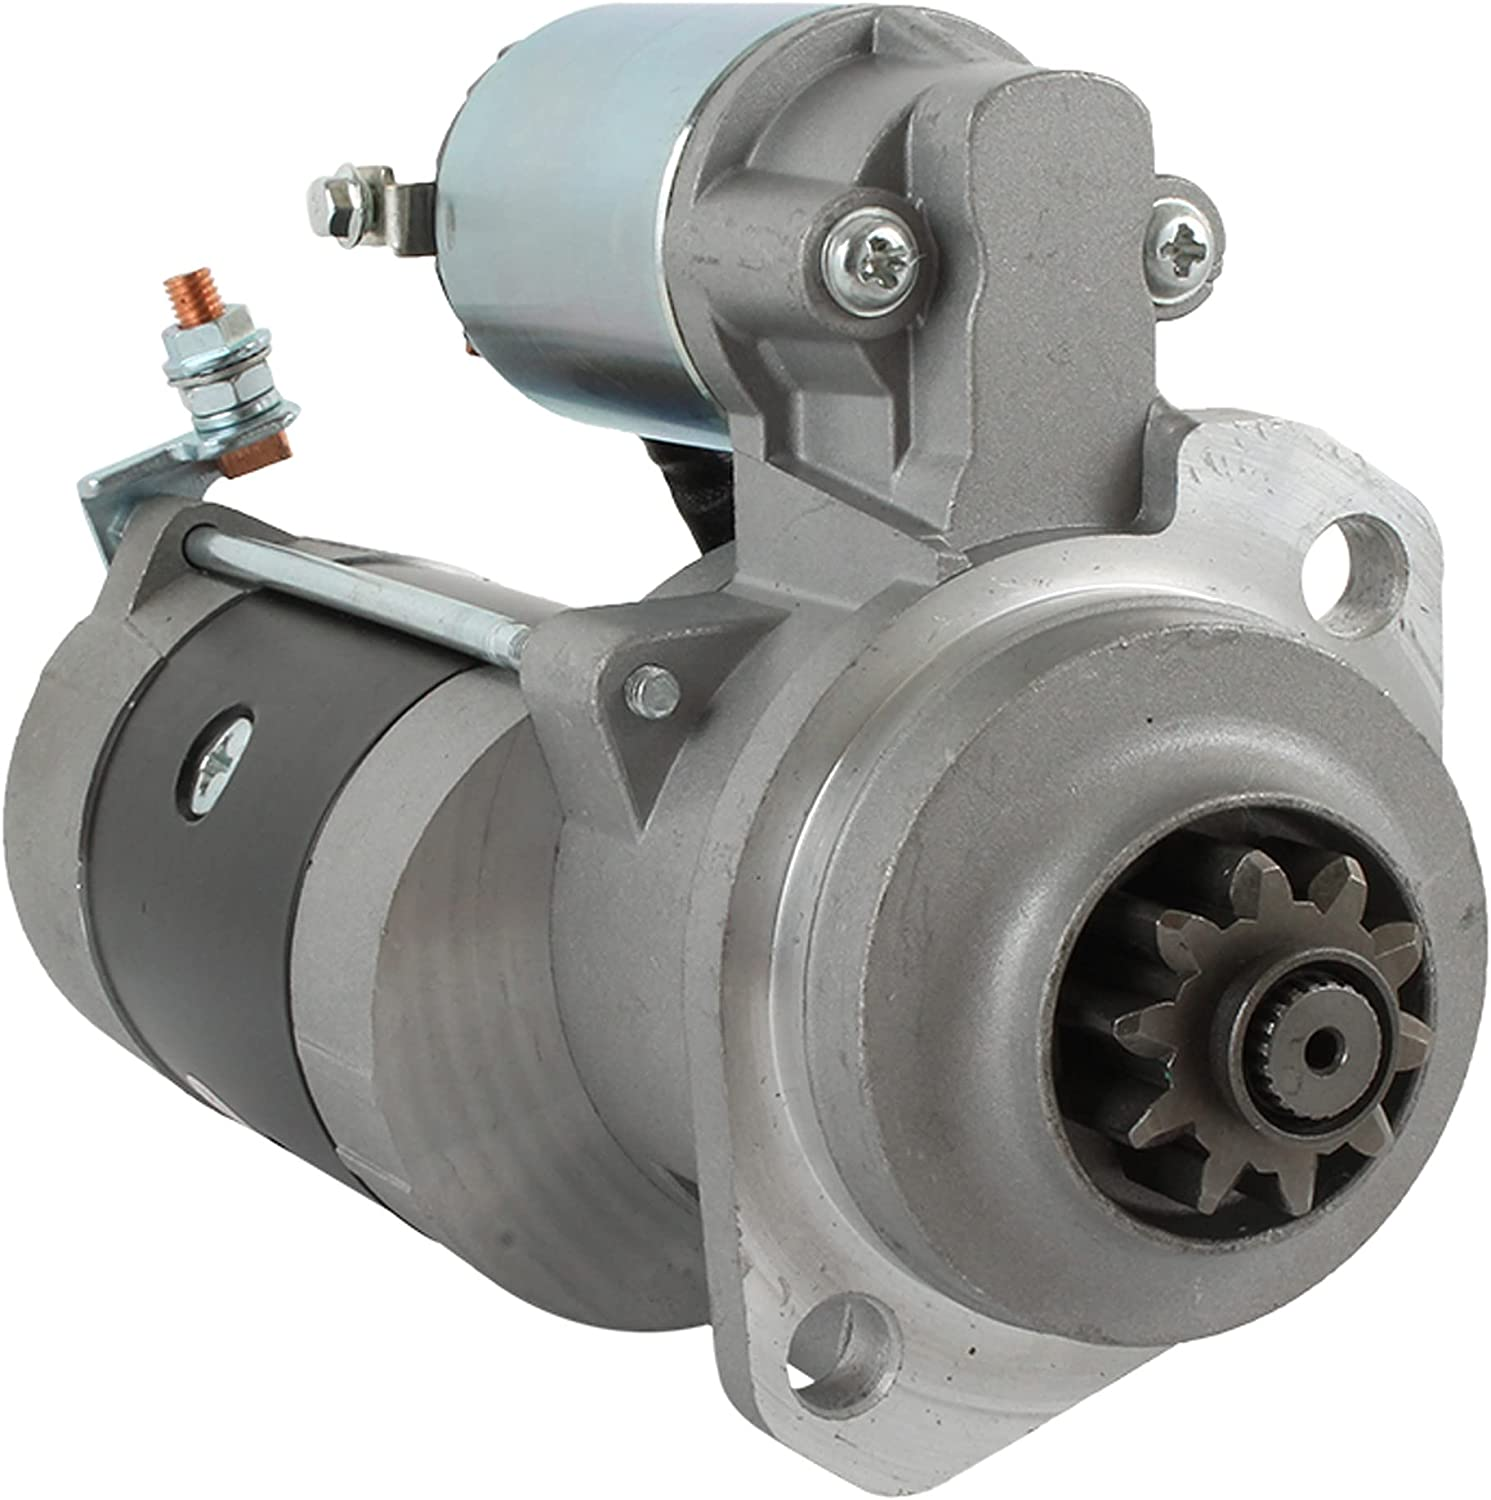 DB Electrical SMT0203 Starter Motor With Sale item Colorado Springs Mall Compatible Replacement